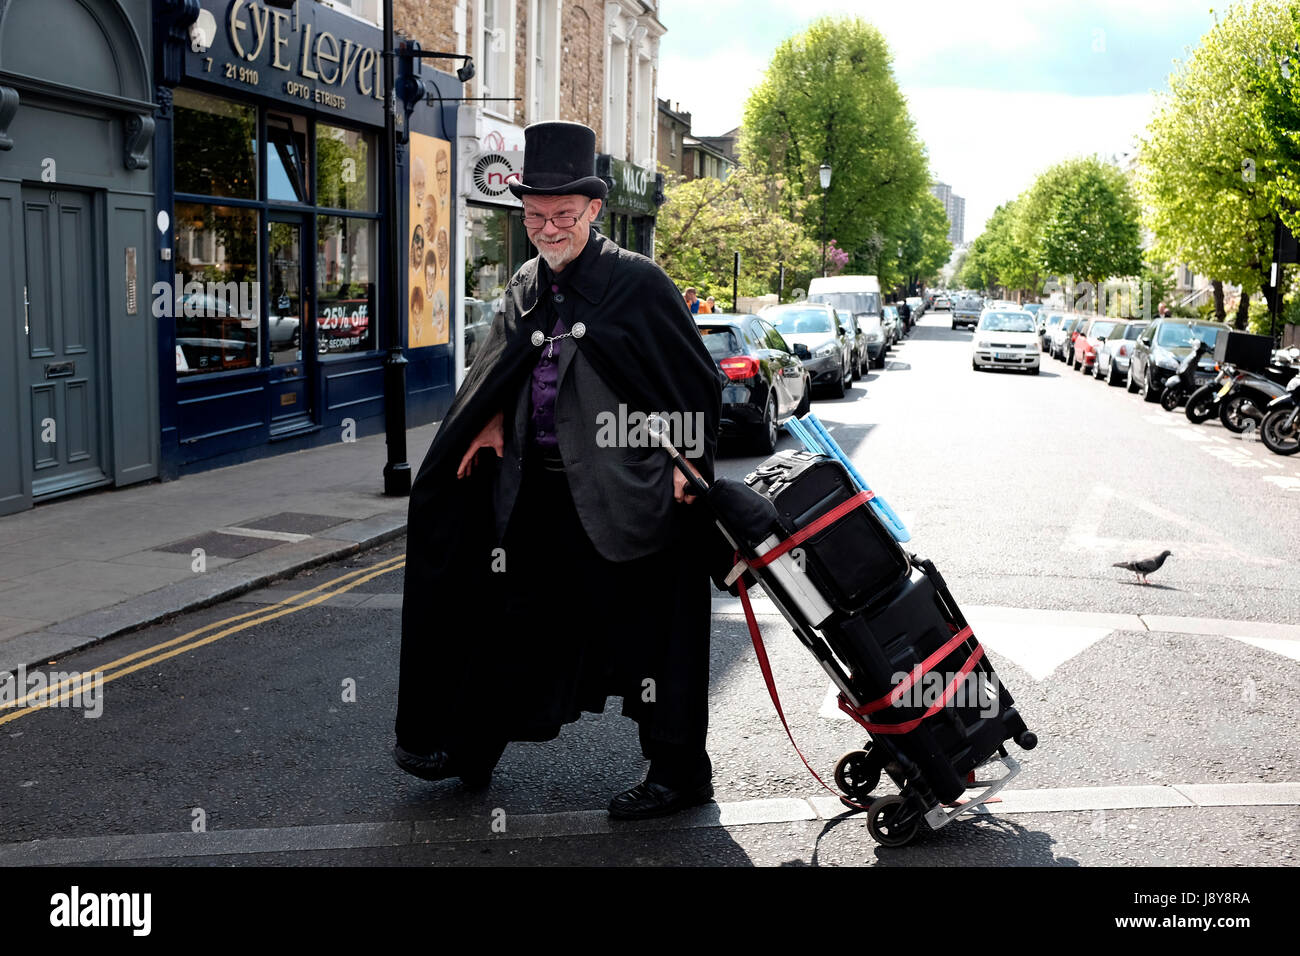 Traveling magician, Notting Hill, London, England, UK. Stock Photo